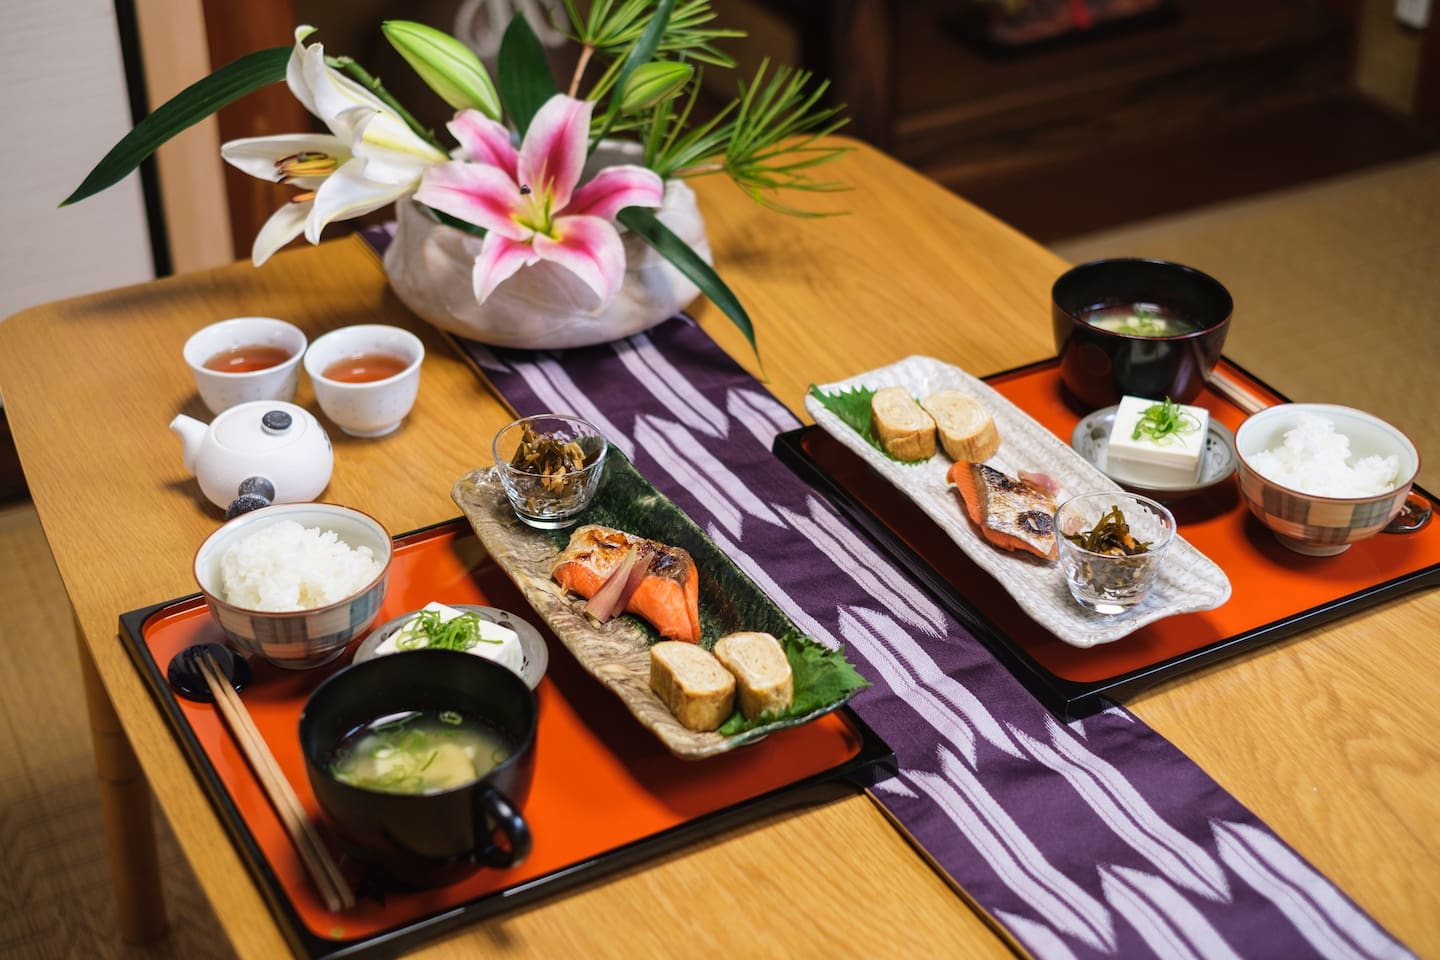 Don't you want to est the  meal  that Japanese people are eating every day?You can shop in the nearby supermarket like a local Japanese and make it in the kitchen. If you need, we can help.We recommend the experience that can not be in luxury hotels.